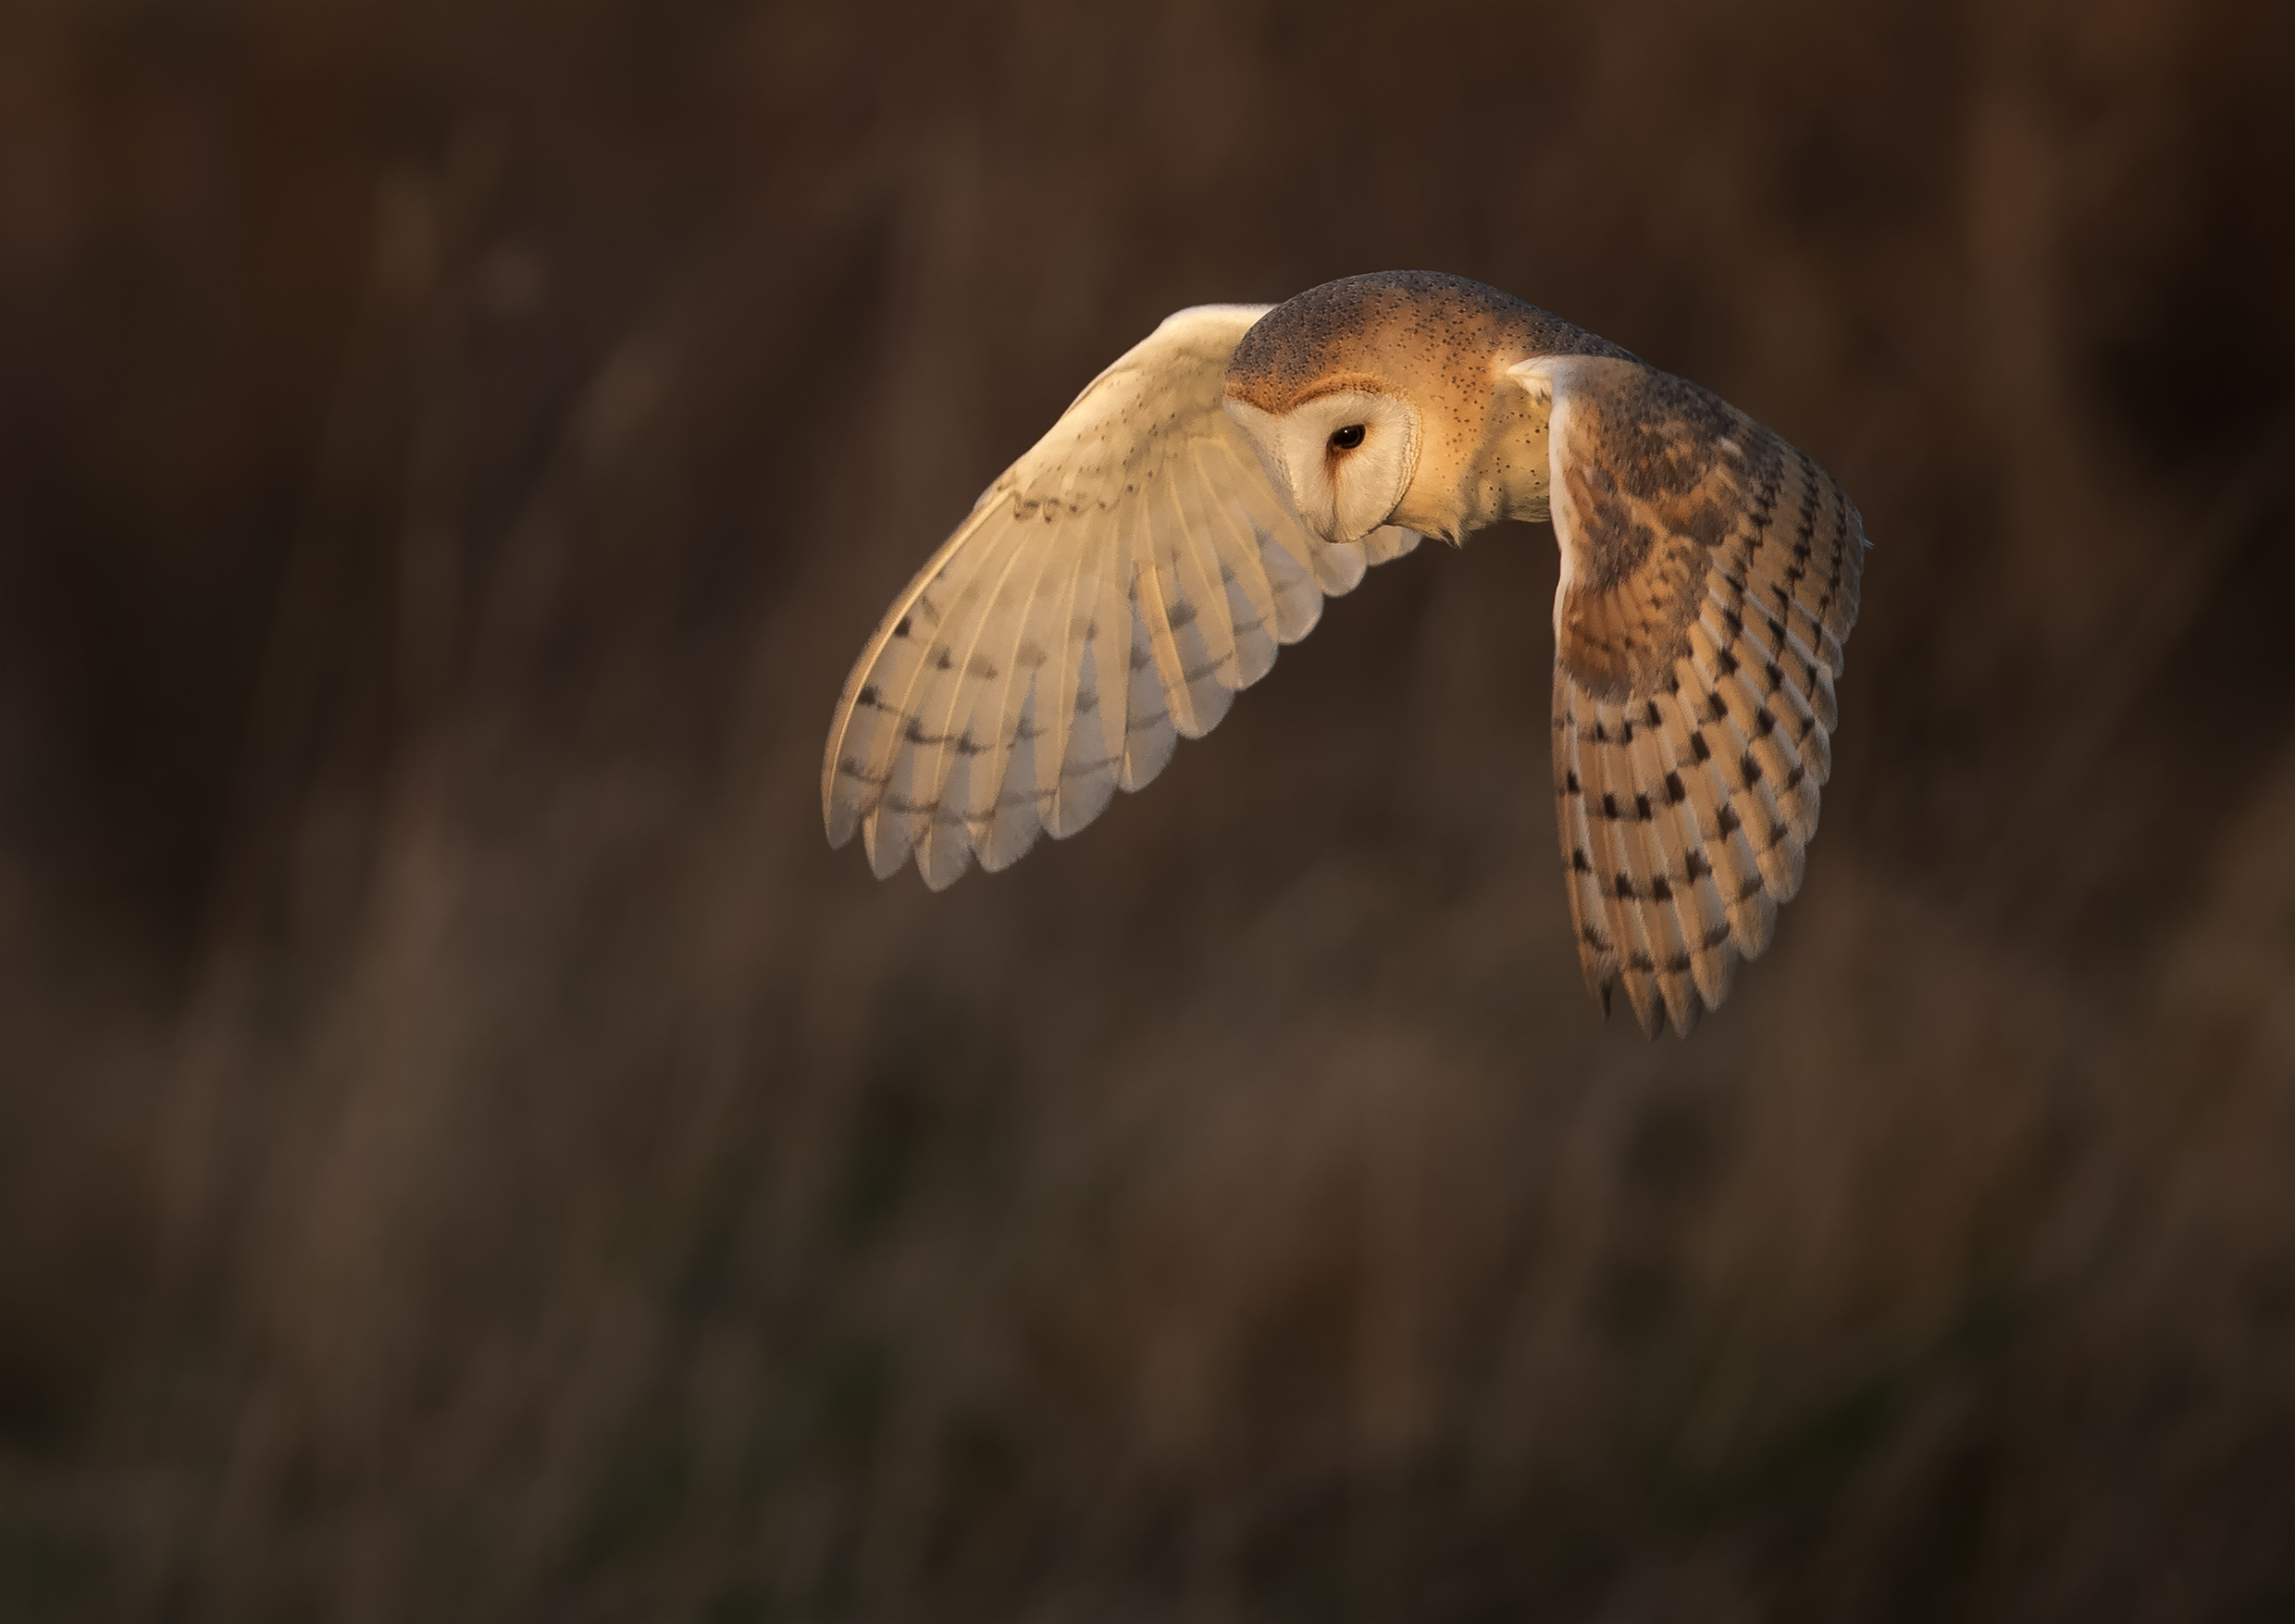 Barn Owl late light - 9th Feb 18 A4 Print.jpg